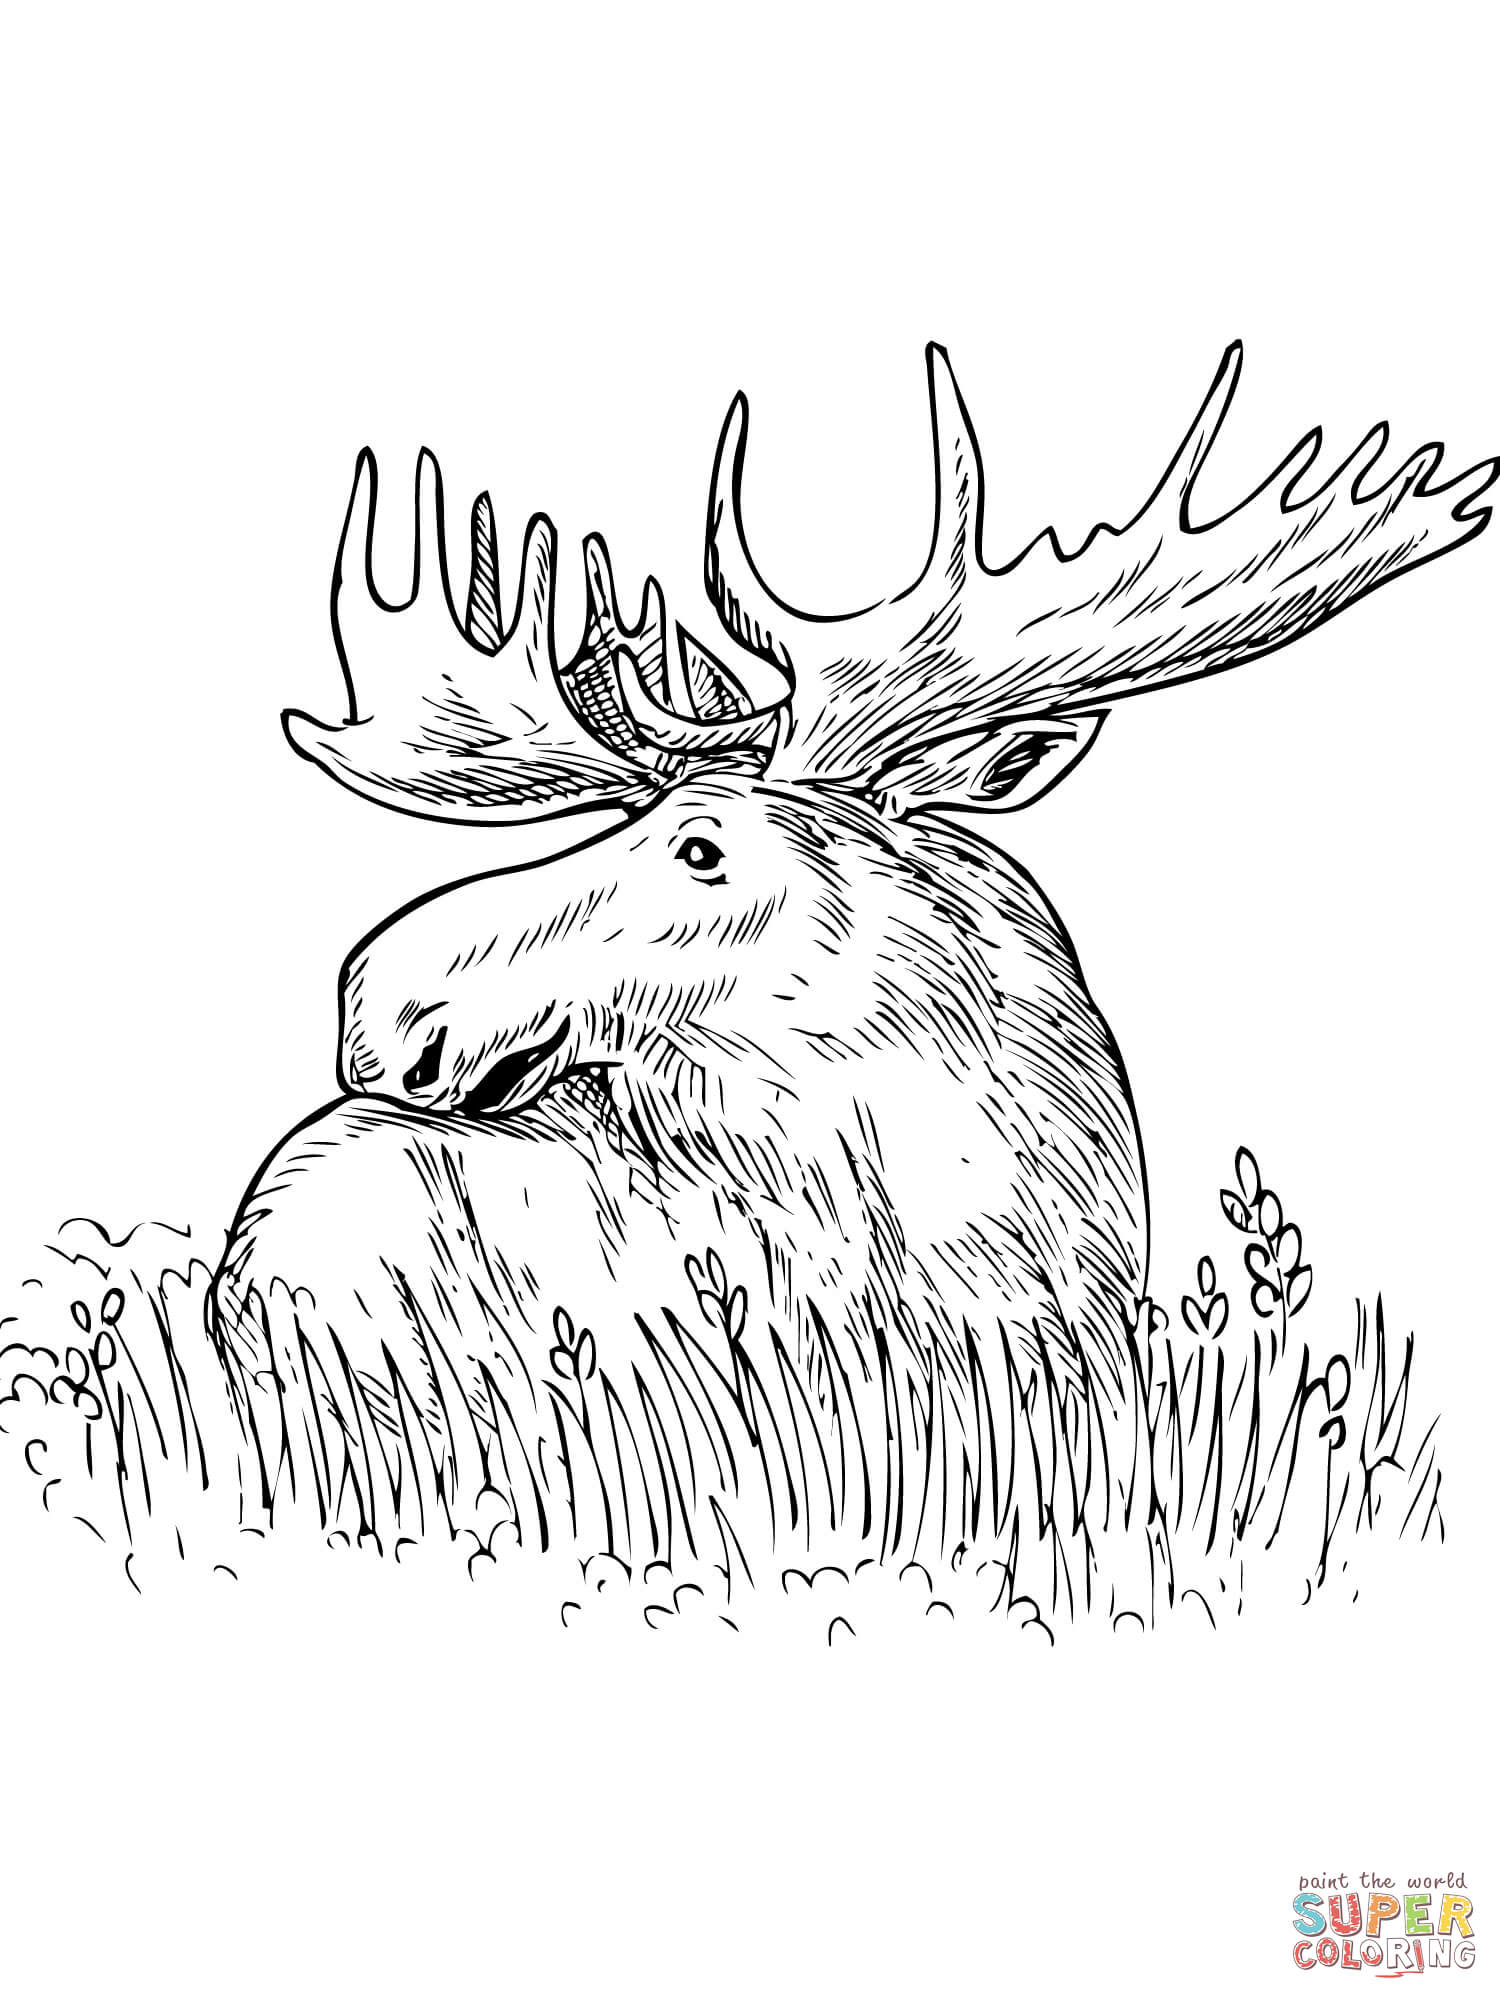 coloring moose moose 01 coloring page coloring page central moose coloring